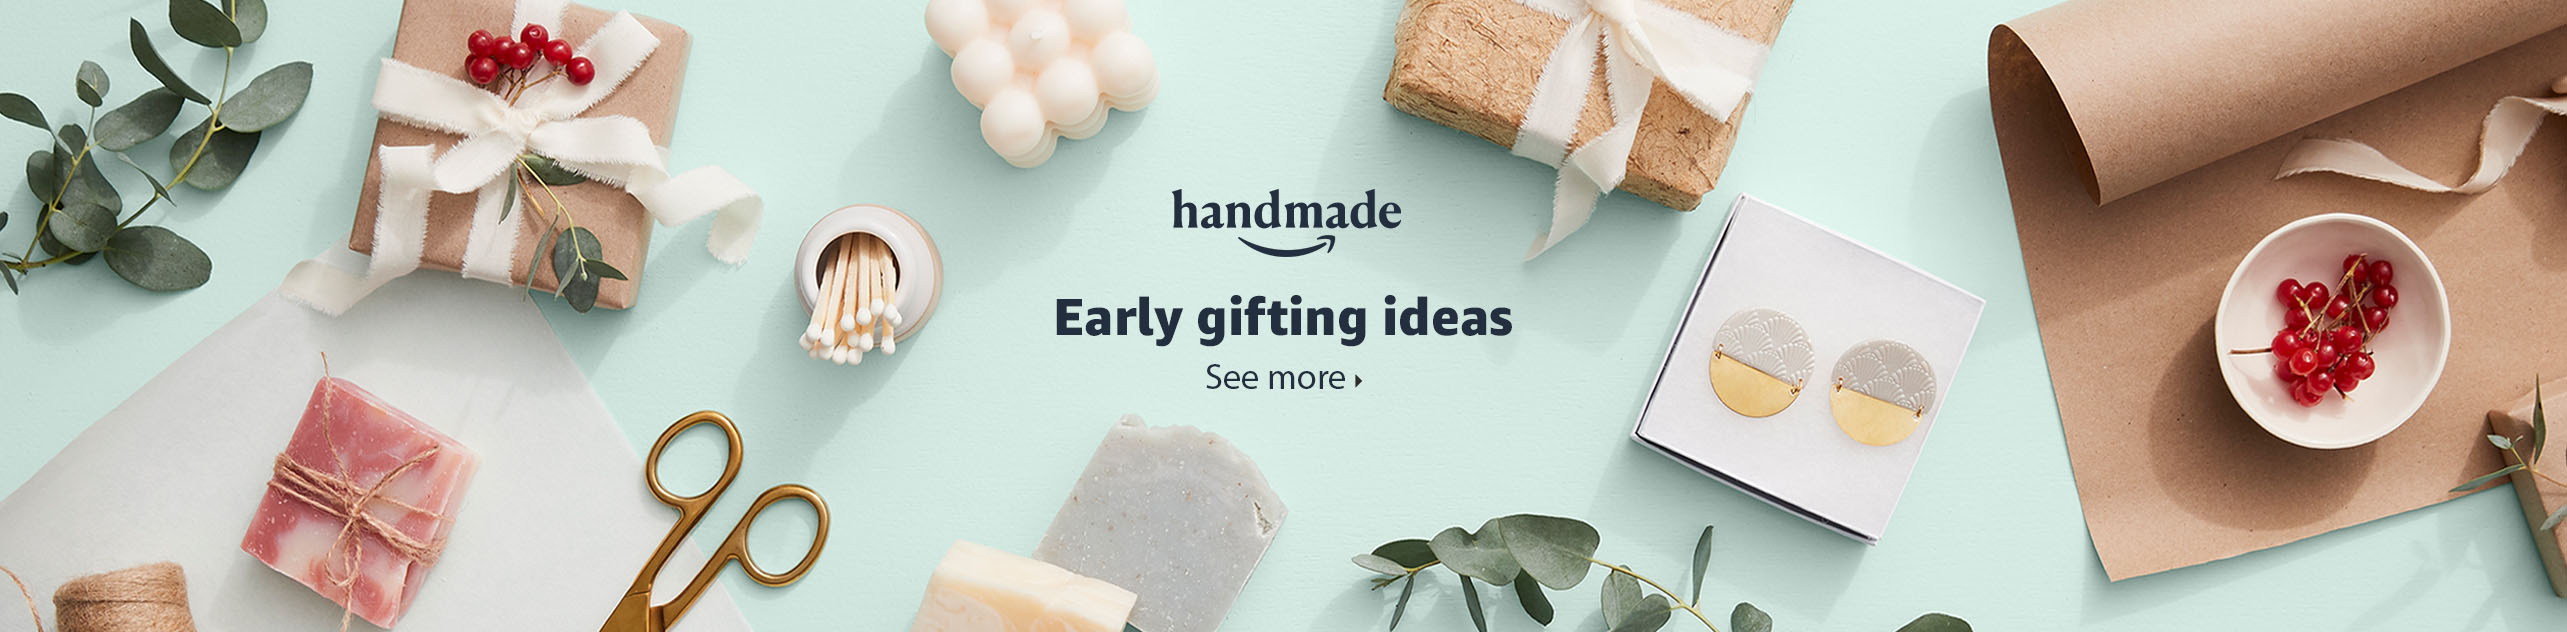 Early gifting ideas